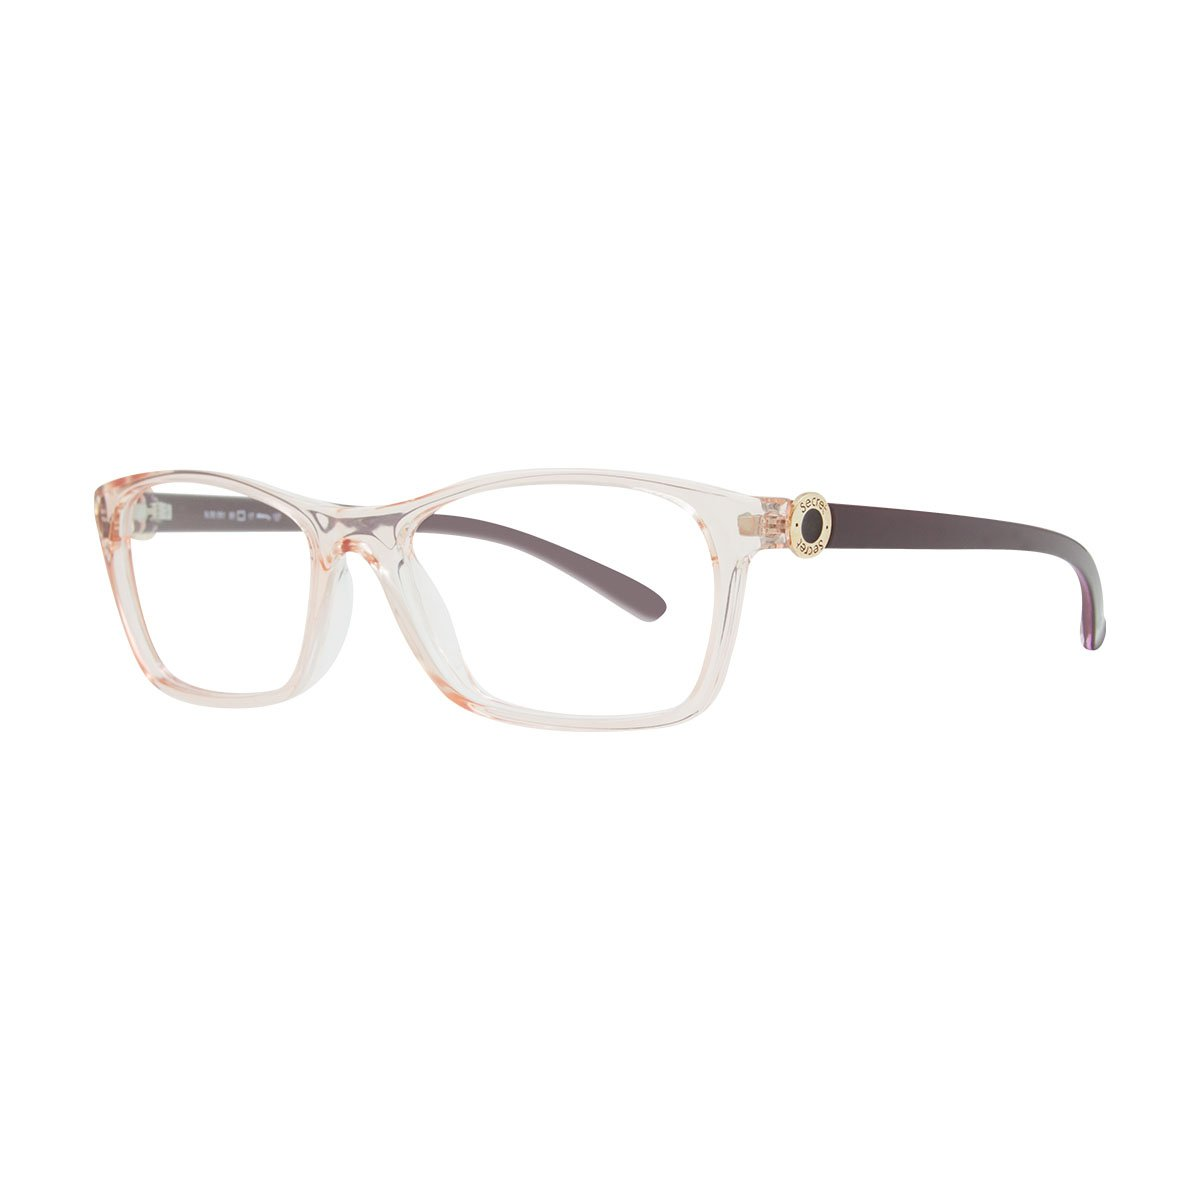 SECRET GRILAMID 80081 GLASSY CORALE PASSIONATE